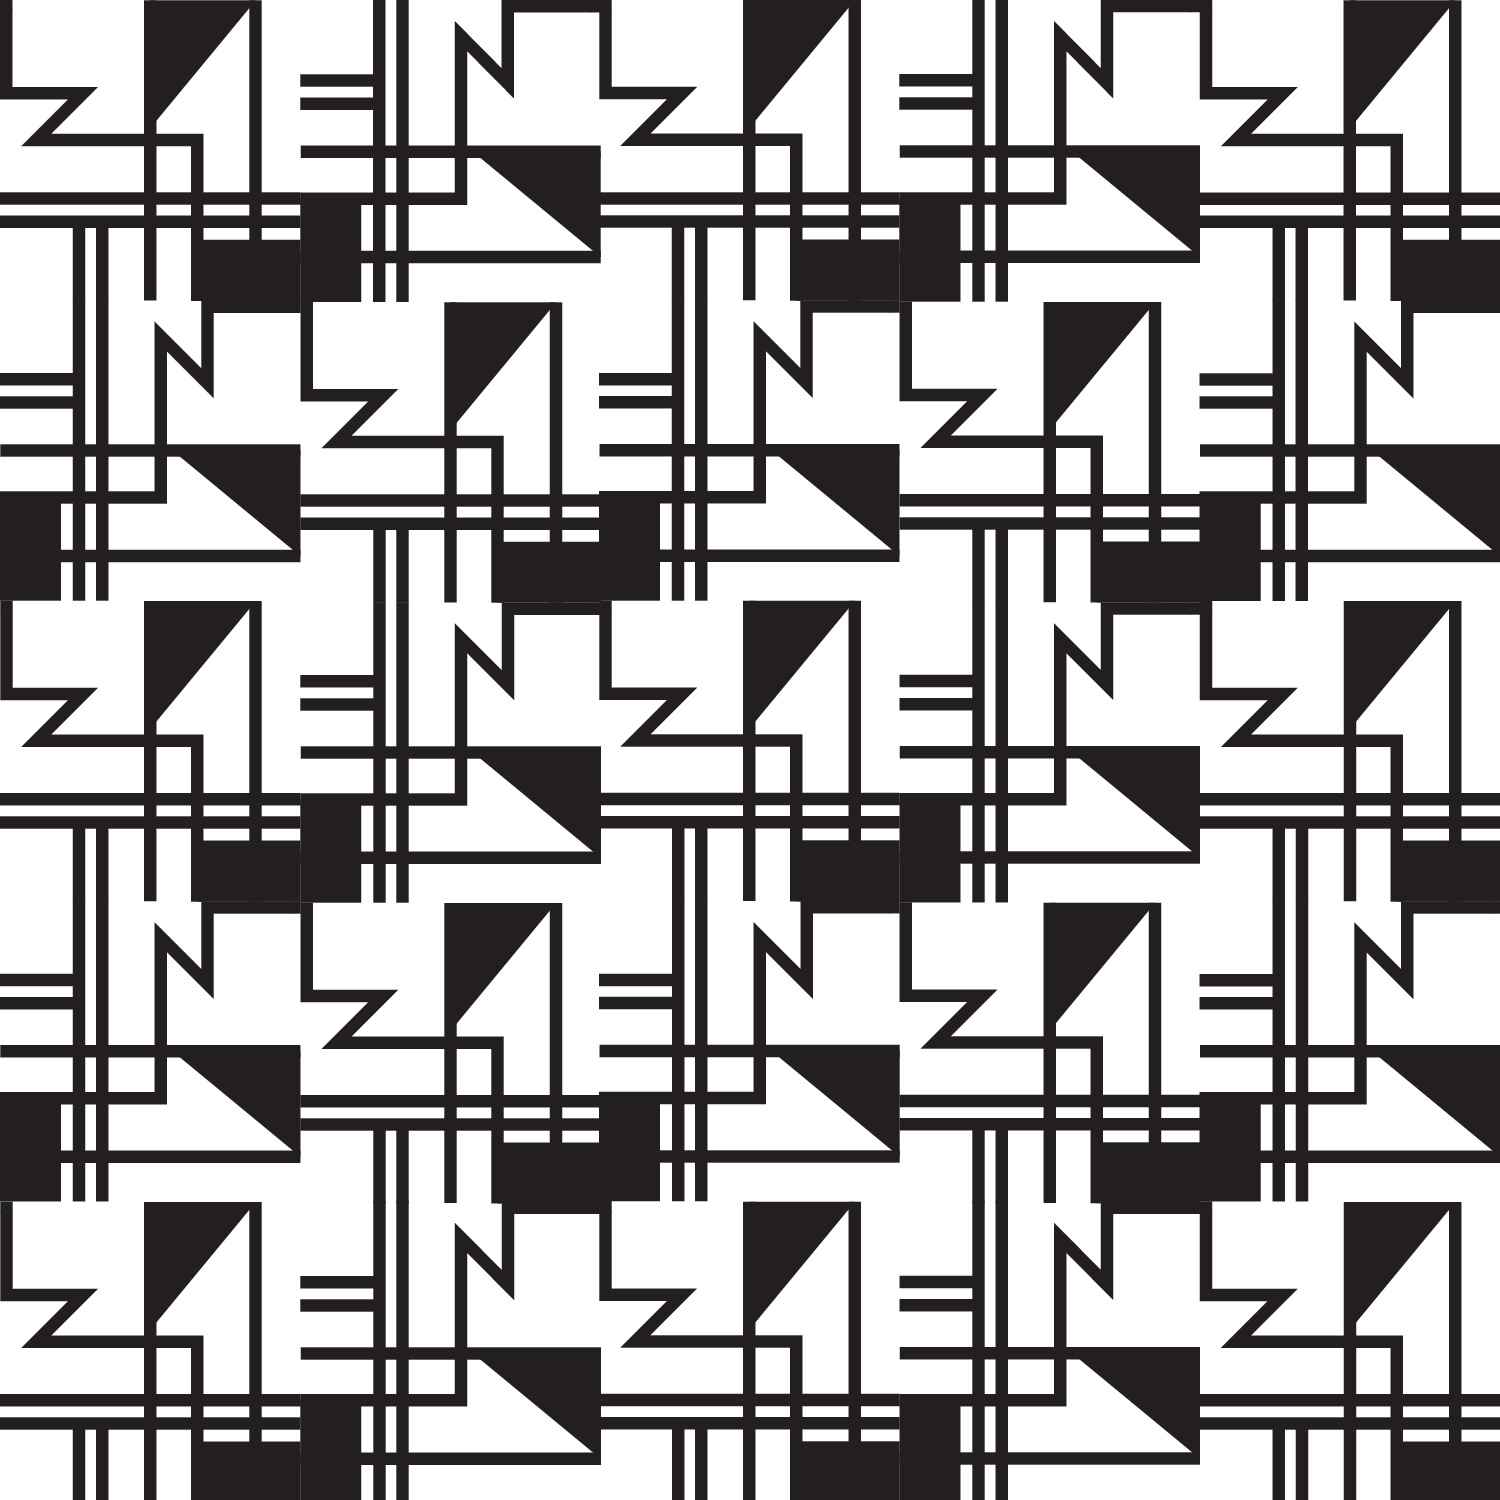 Final Black and White Pattern